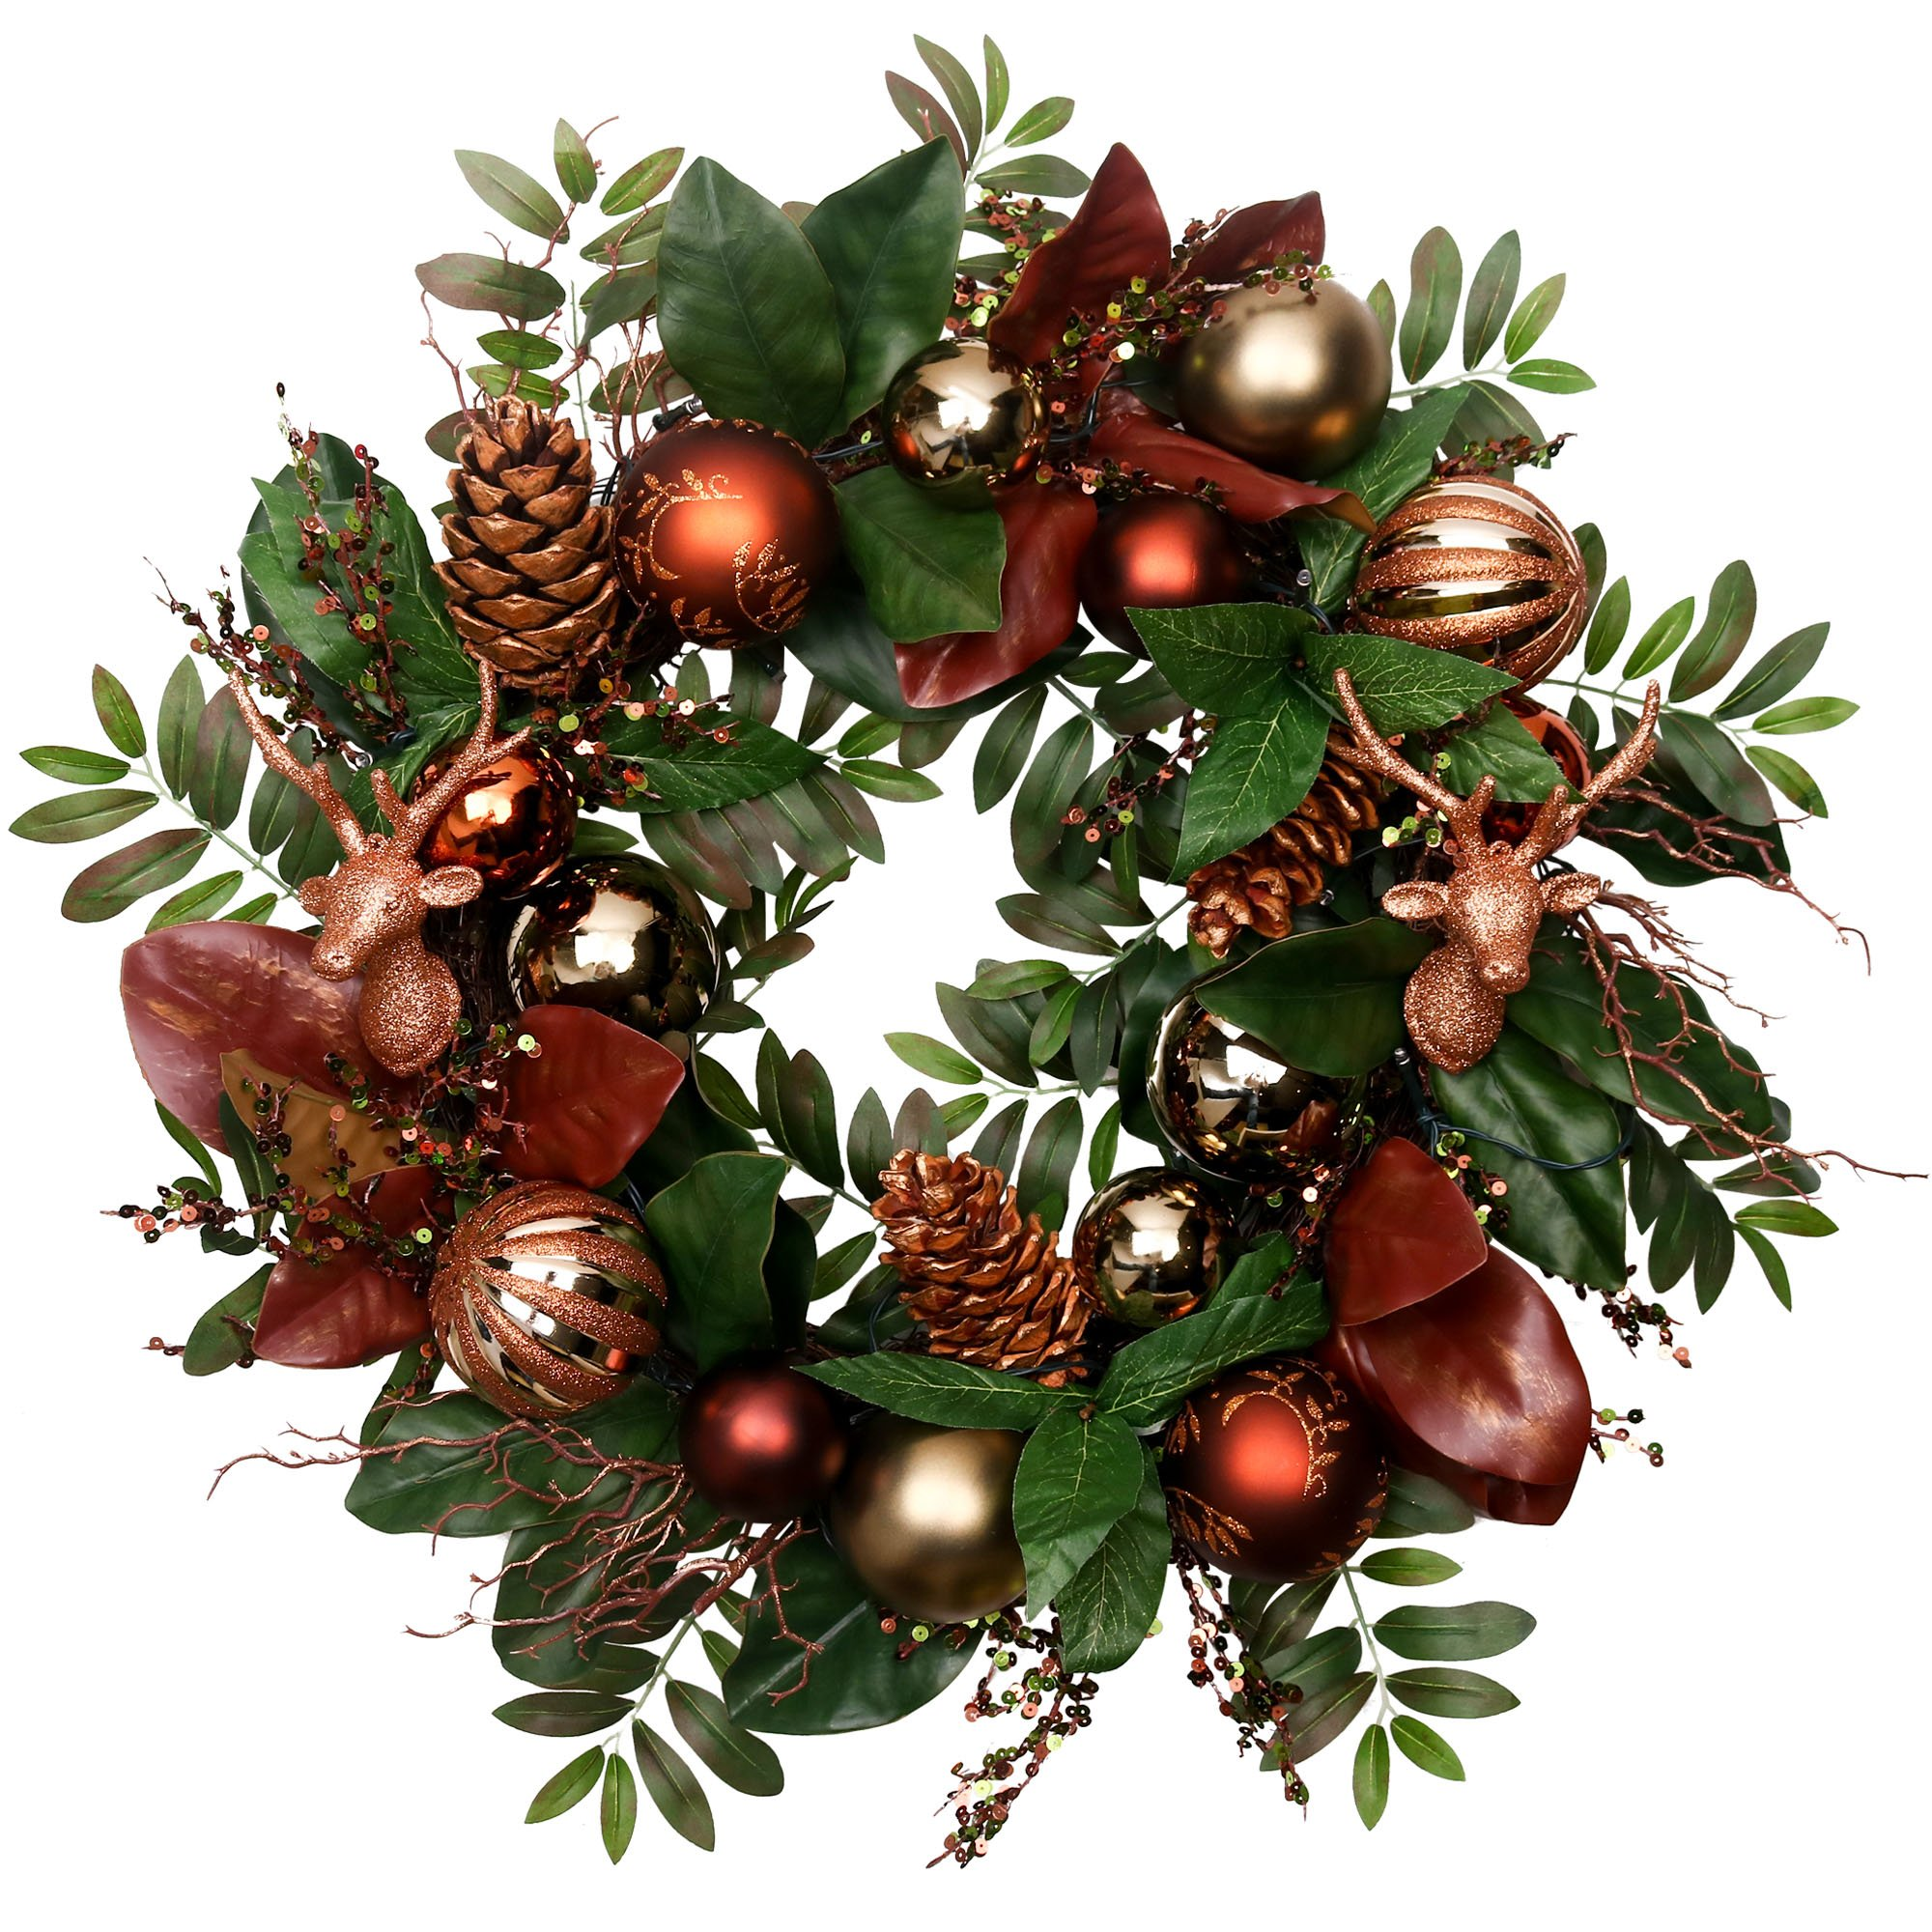 V&M VALERY MADELYN Pre-Lit 24'' Woodland Artificial Greenery Eucalypti Leaves Wreath Home Office Wall Wedding,Rattan Base, Balls Included, Battery Operated 20 LED Lights Remote Timer